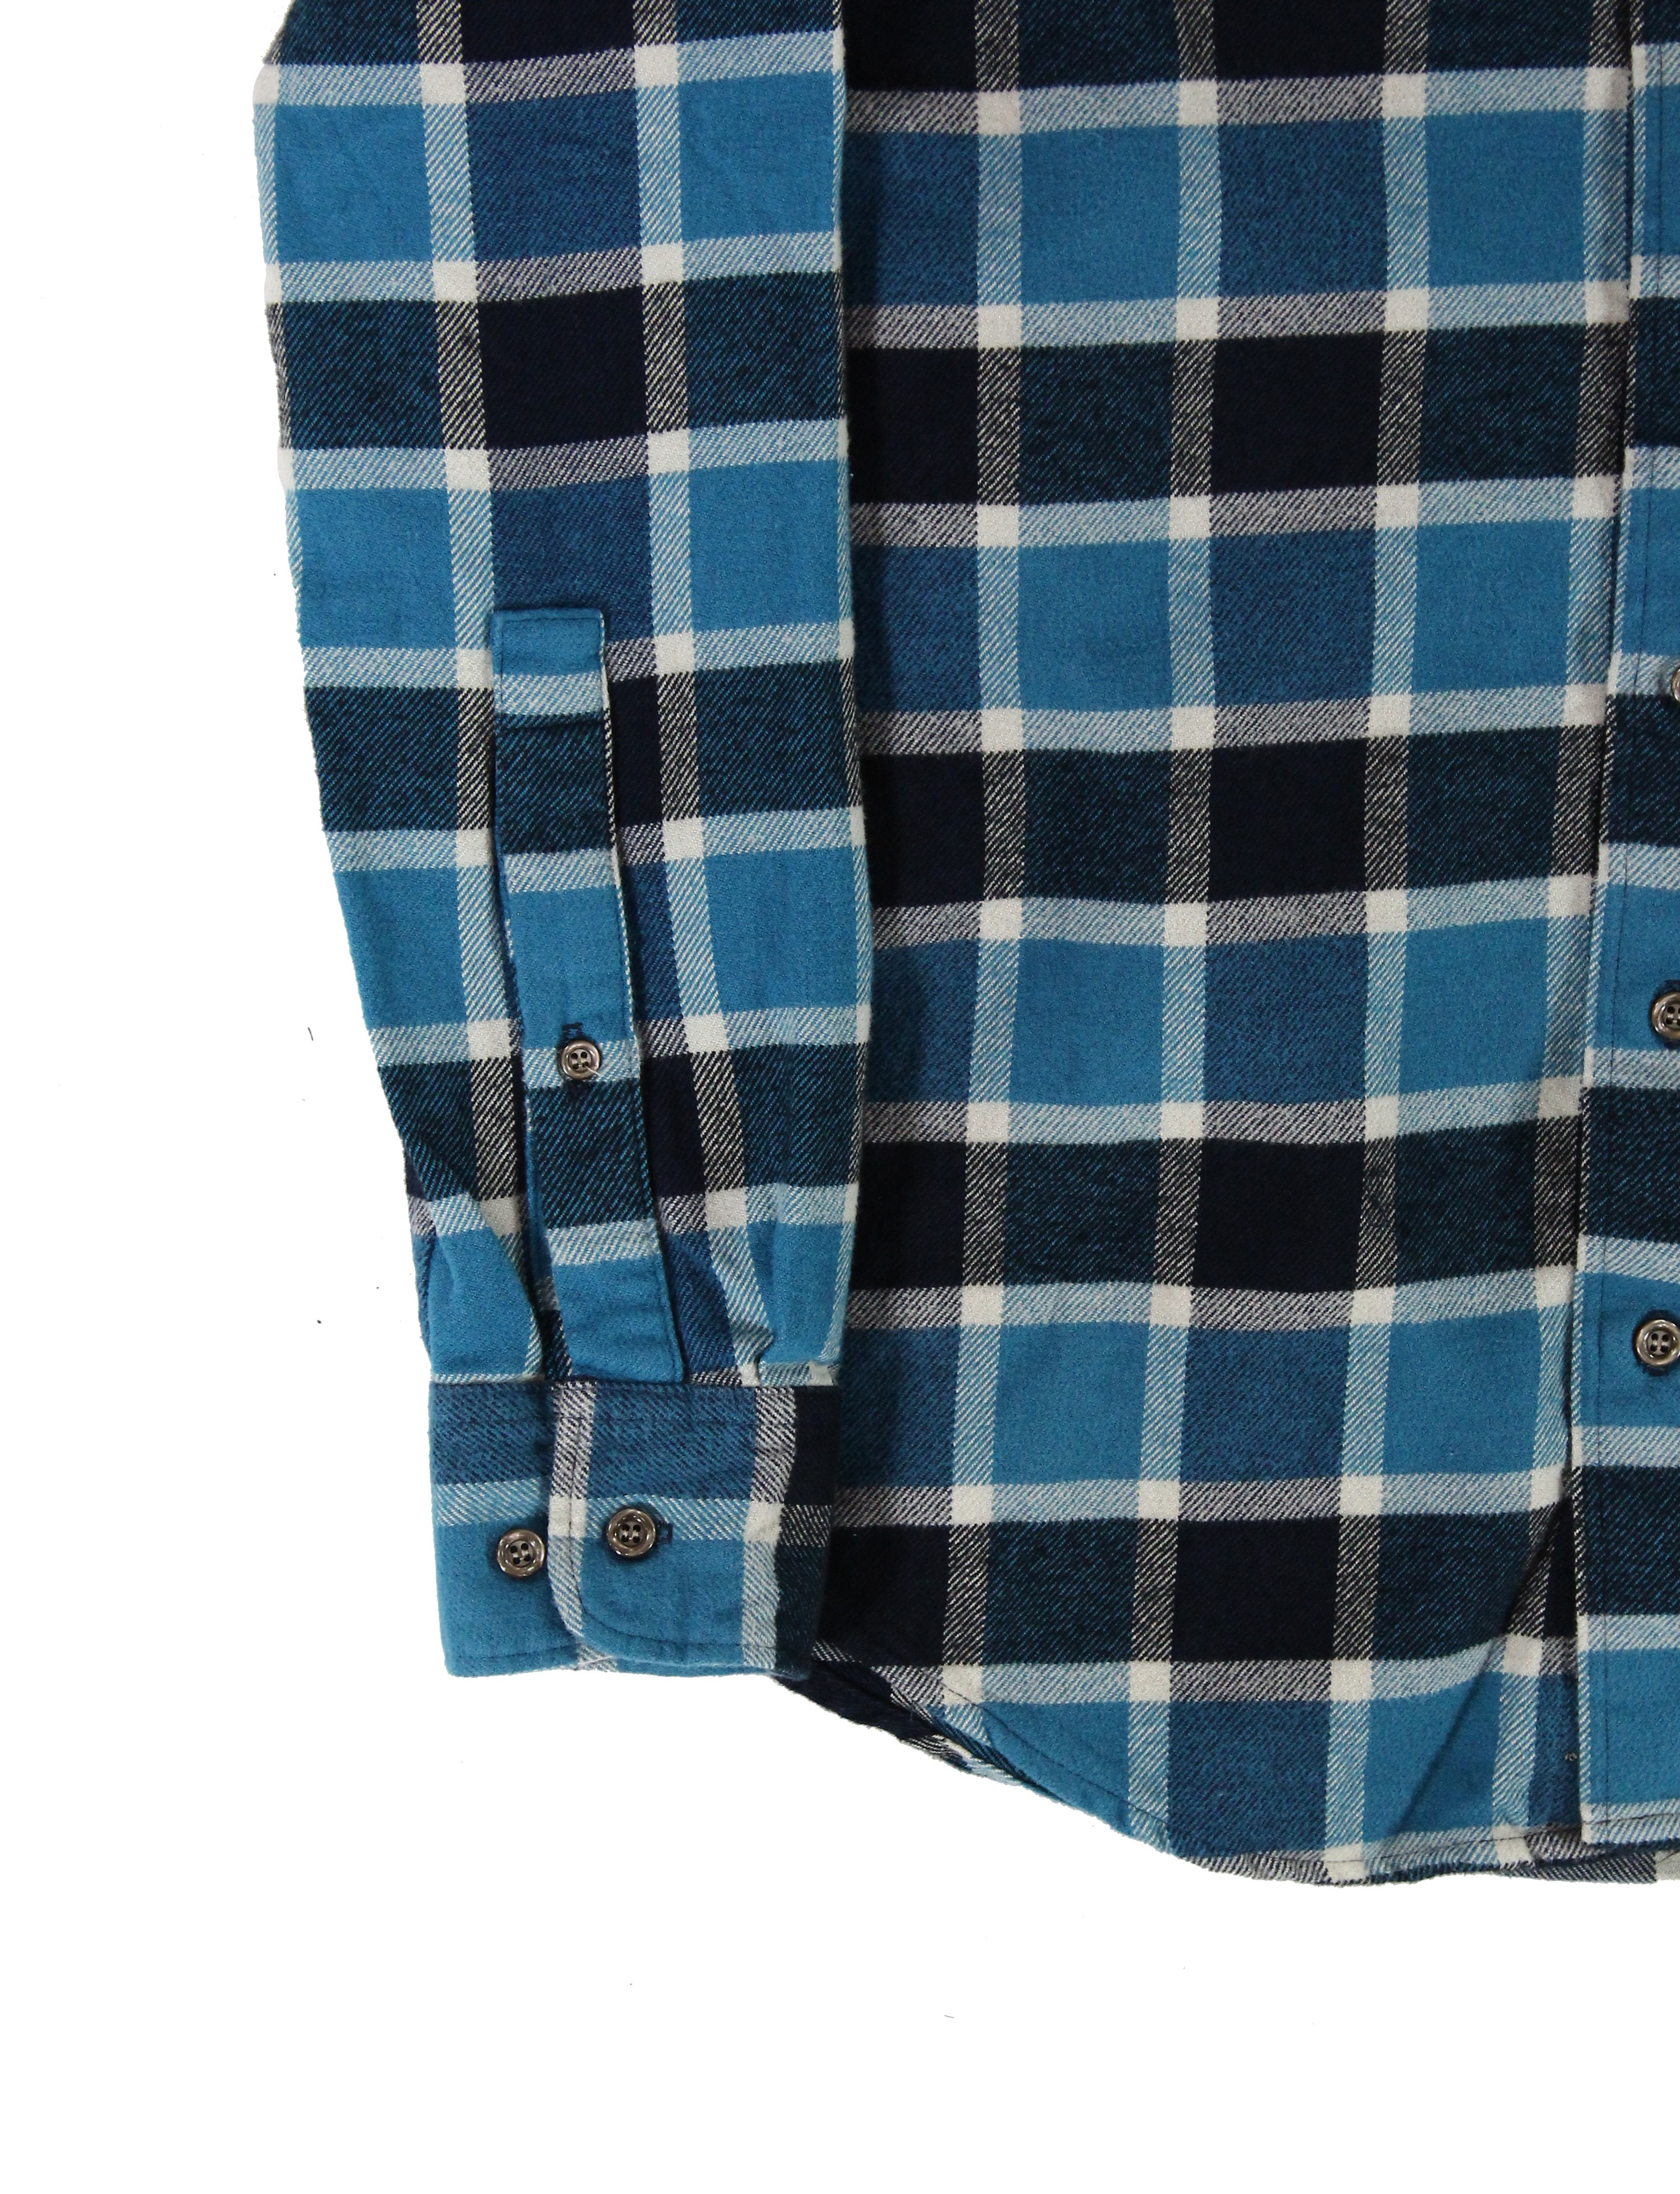 American-Apparel-NEW-Mens-Plaid-Flannel-Lumberjack-Classic-Fit-Button-Down-Shirt thumbnail 10